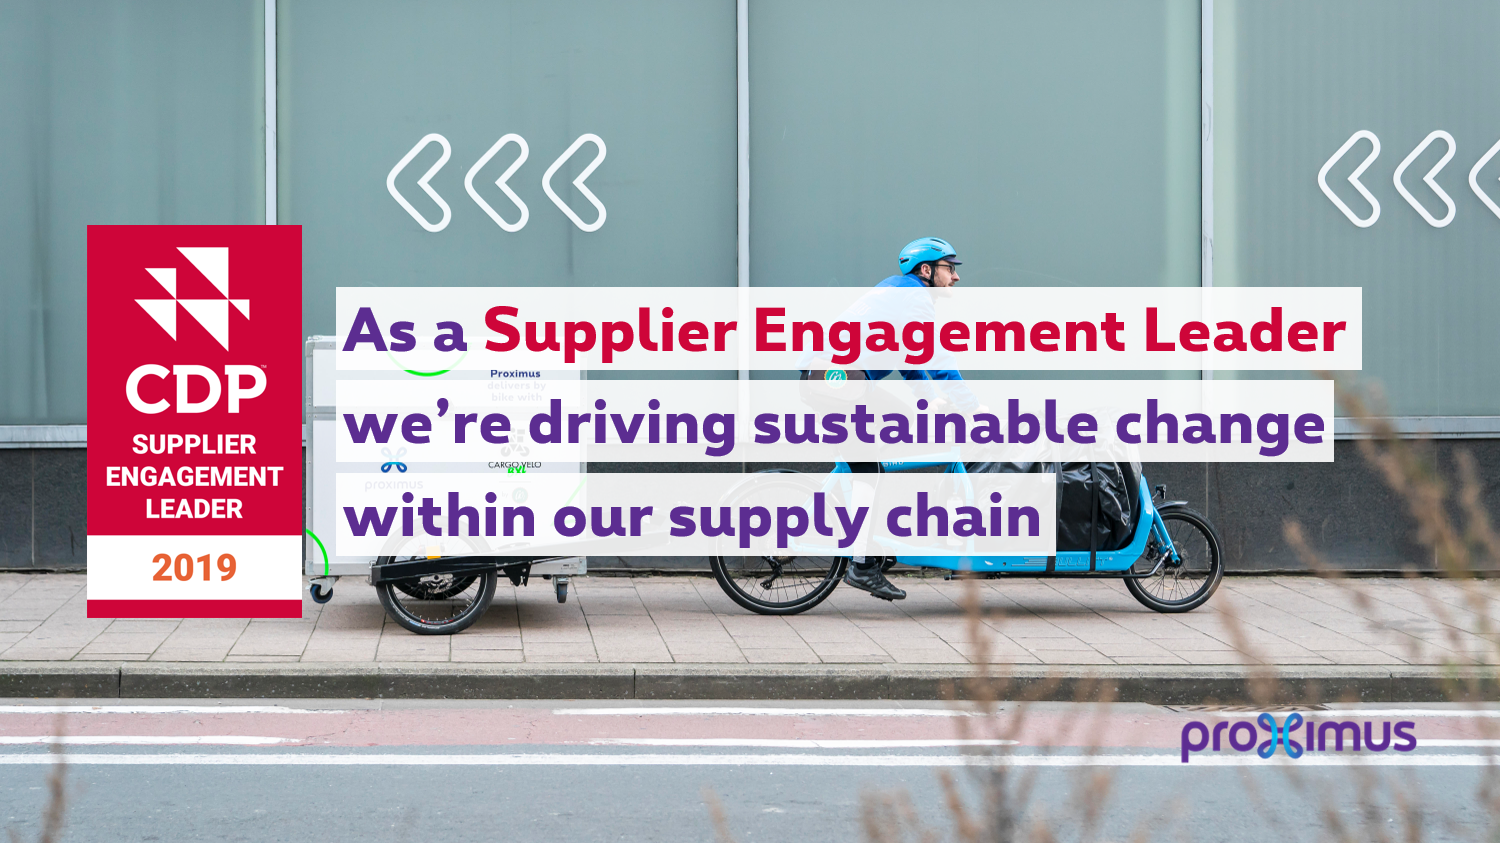 CDP Supplier Engagement Leader 2019 : As a Supplier Engagement Leader, we're driving sustainable change within our supply chain